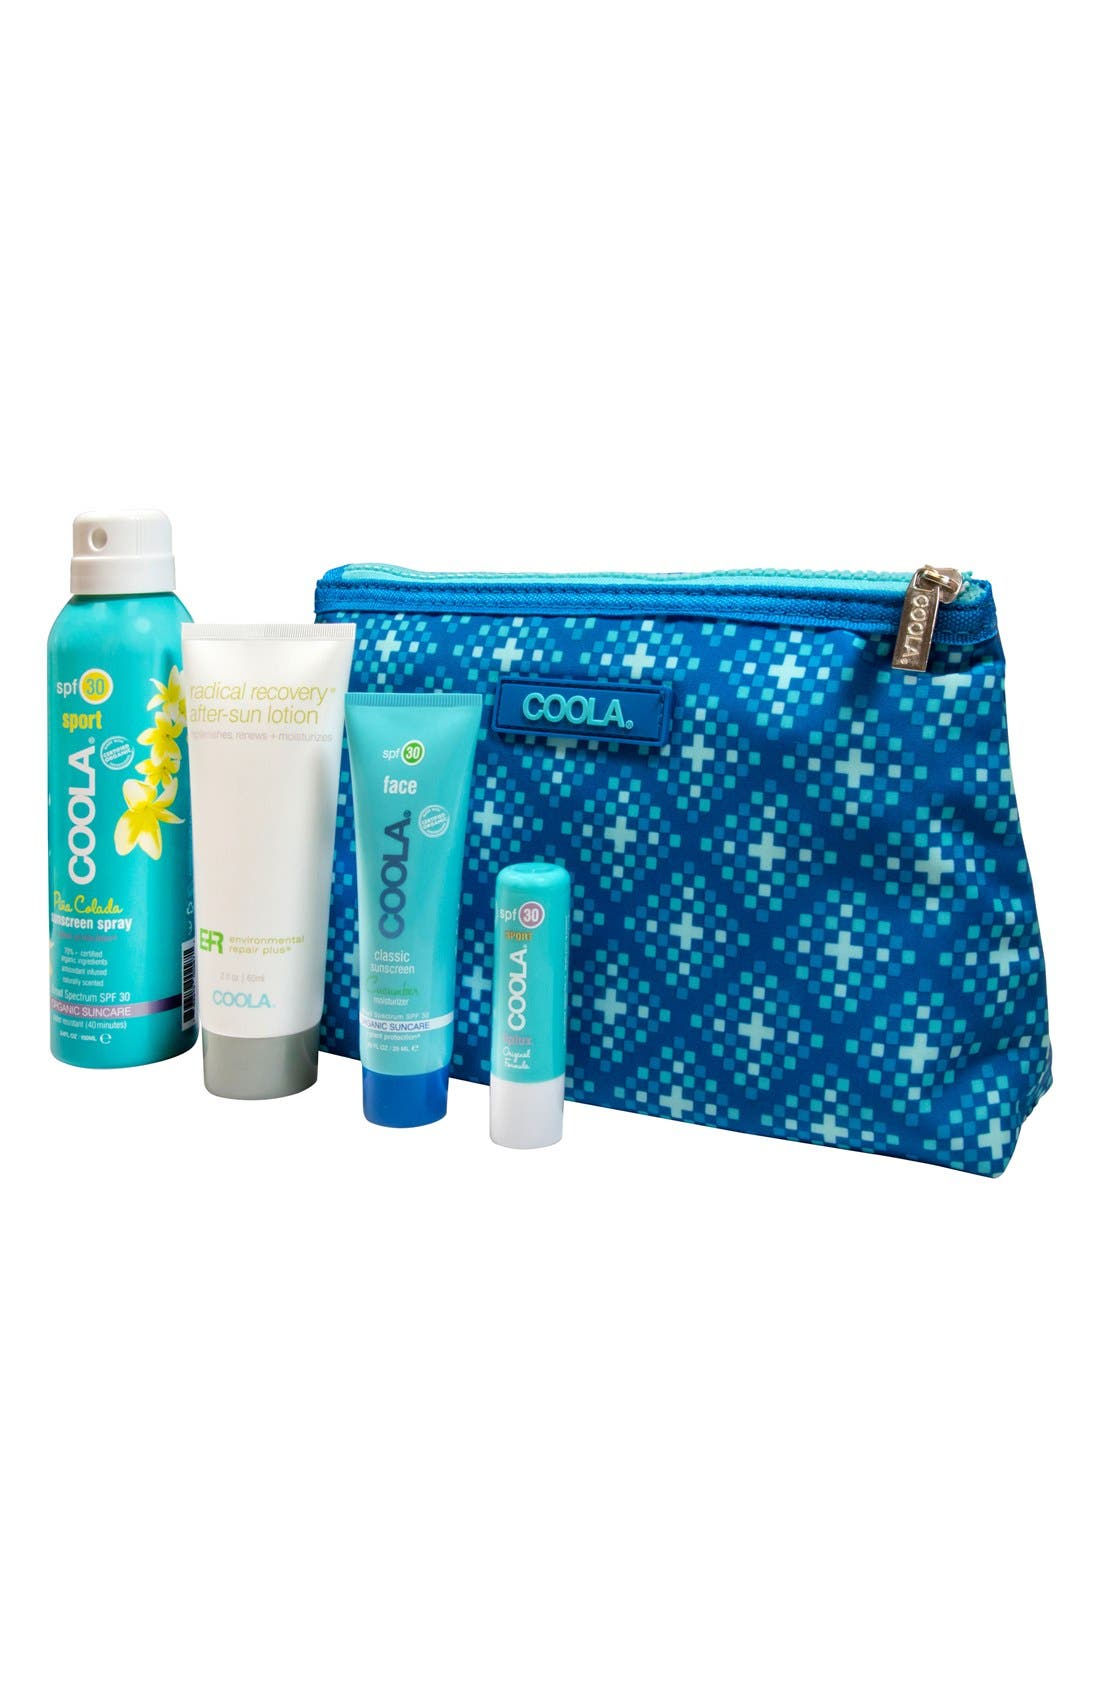 COOLA<sup>®</sup> Suncare Signature Travel Kit,                         Main,                         color, NO COLOR